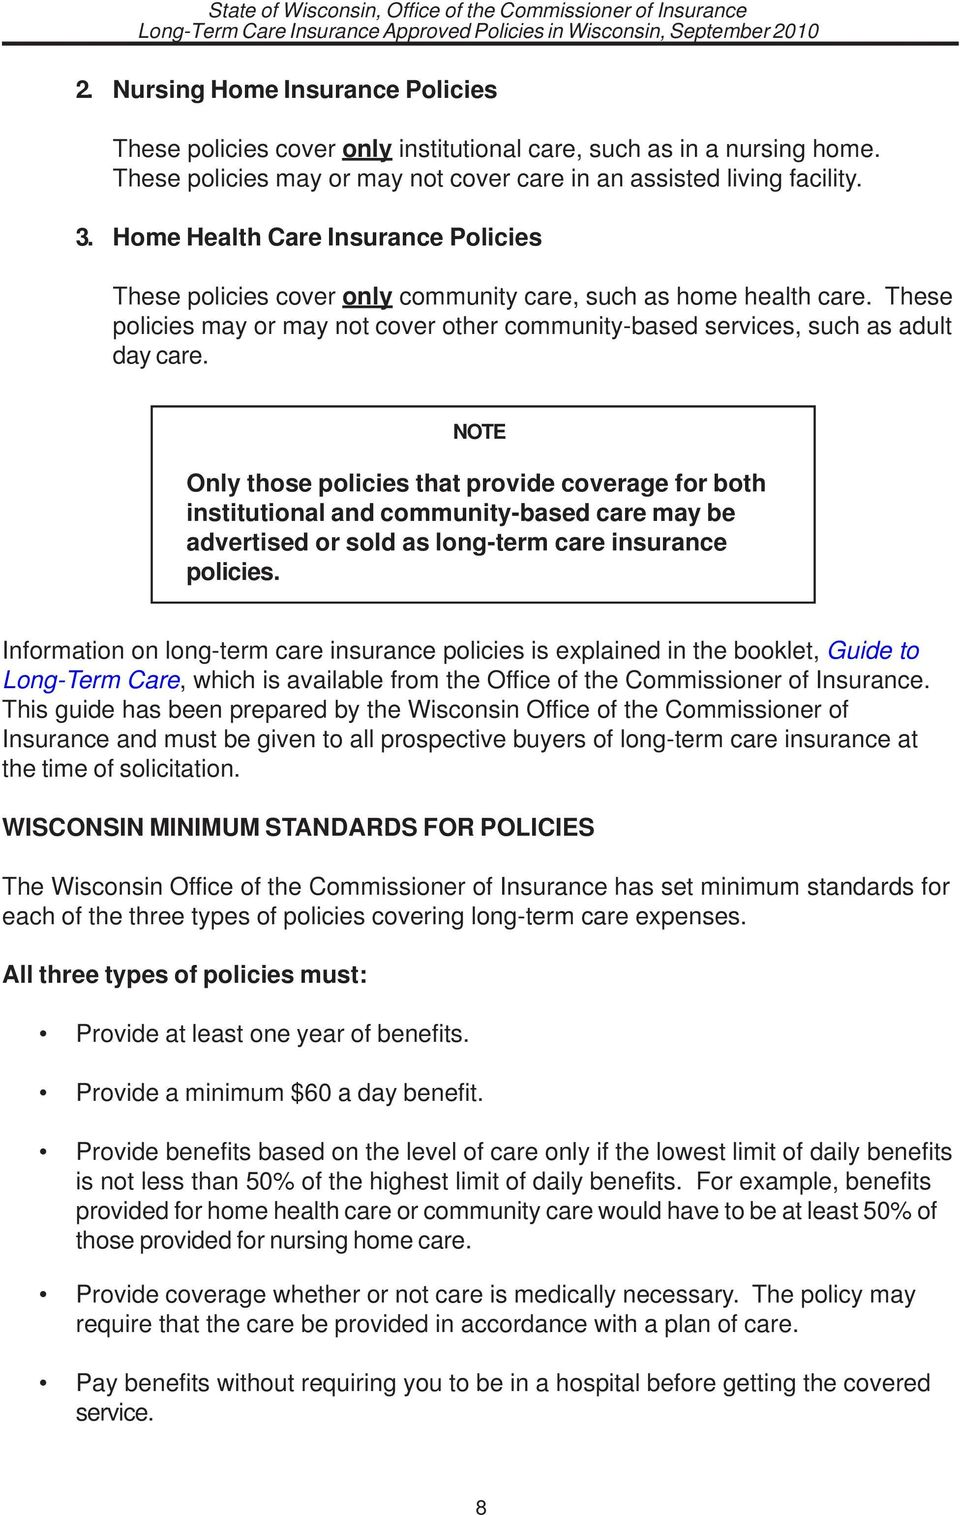 NOTE Only those policies that provide coverage for both institutional and community-based care may be advertised or sold as long-term care insurance policies.